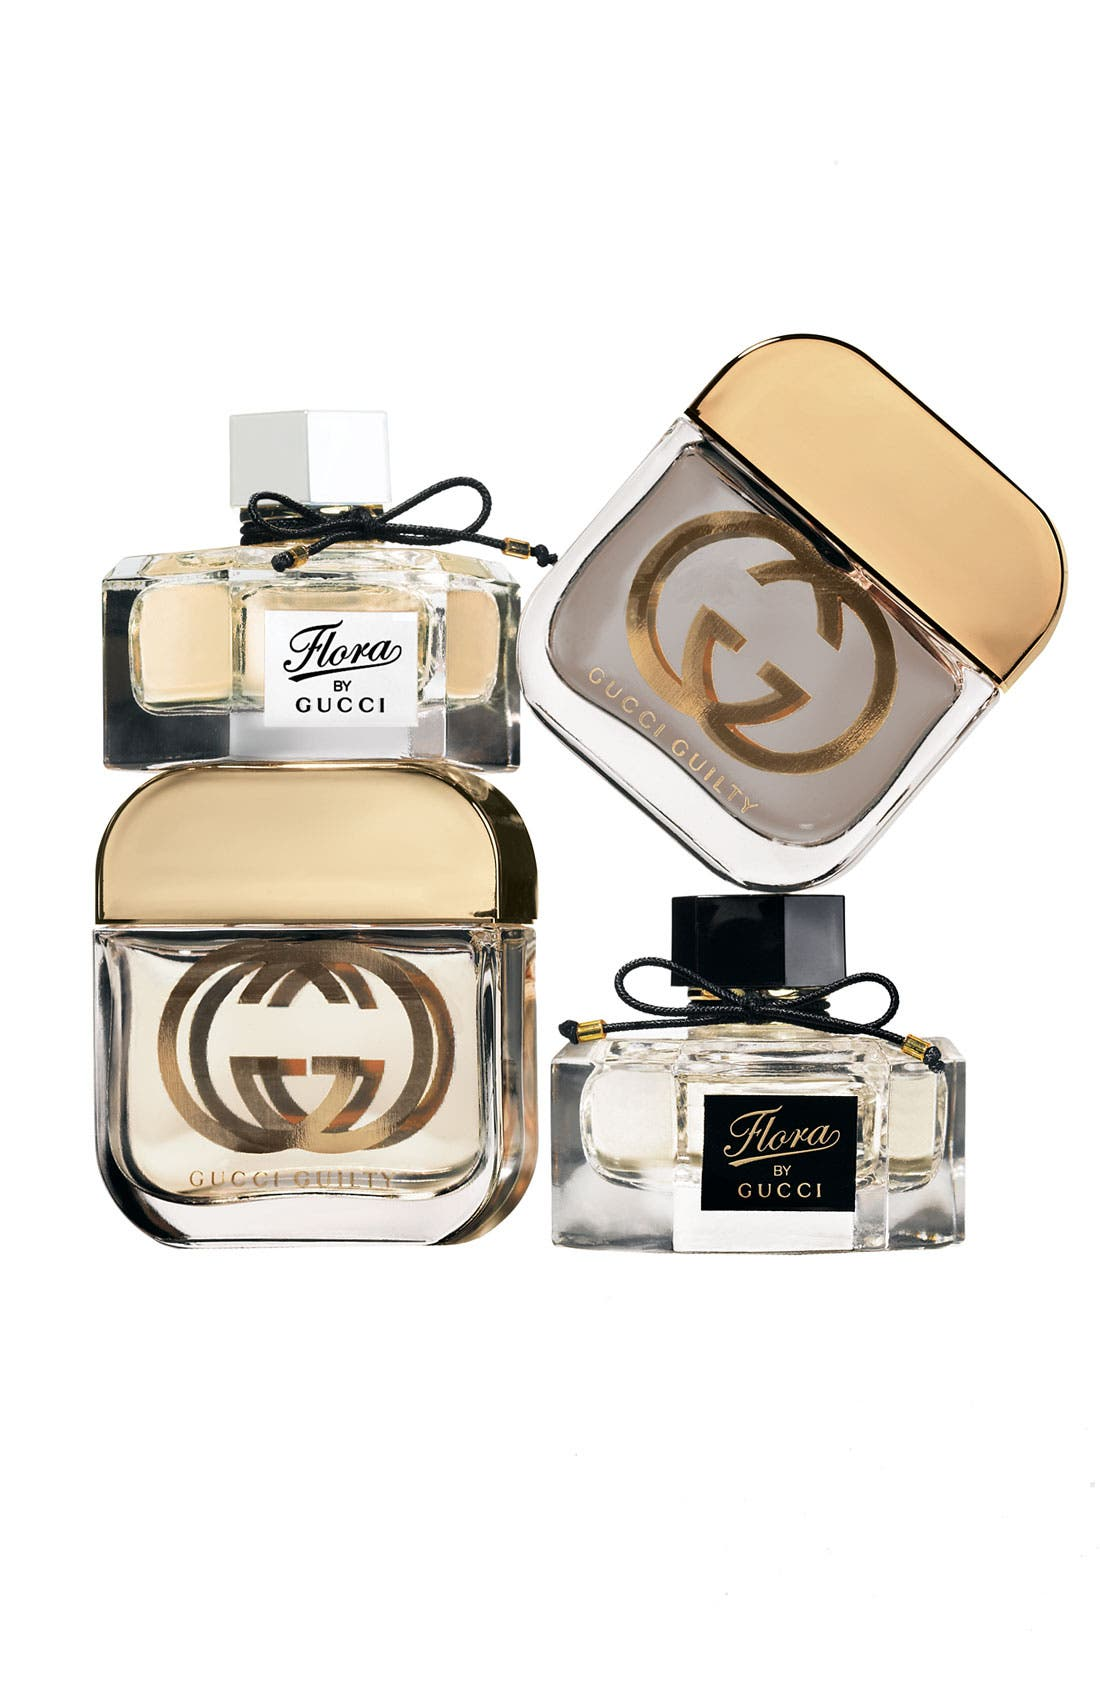 GUCCI,                             'House of Gucci' 90th Anniversary Fragrance Coffret for Her,                             Main thumbnail 1, color,                             000